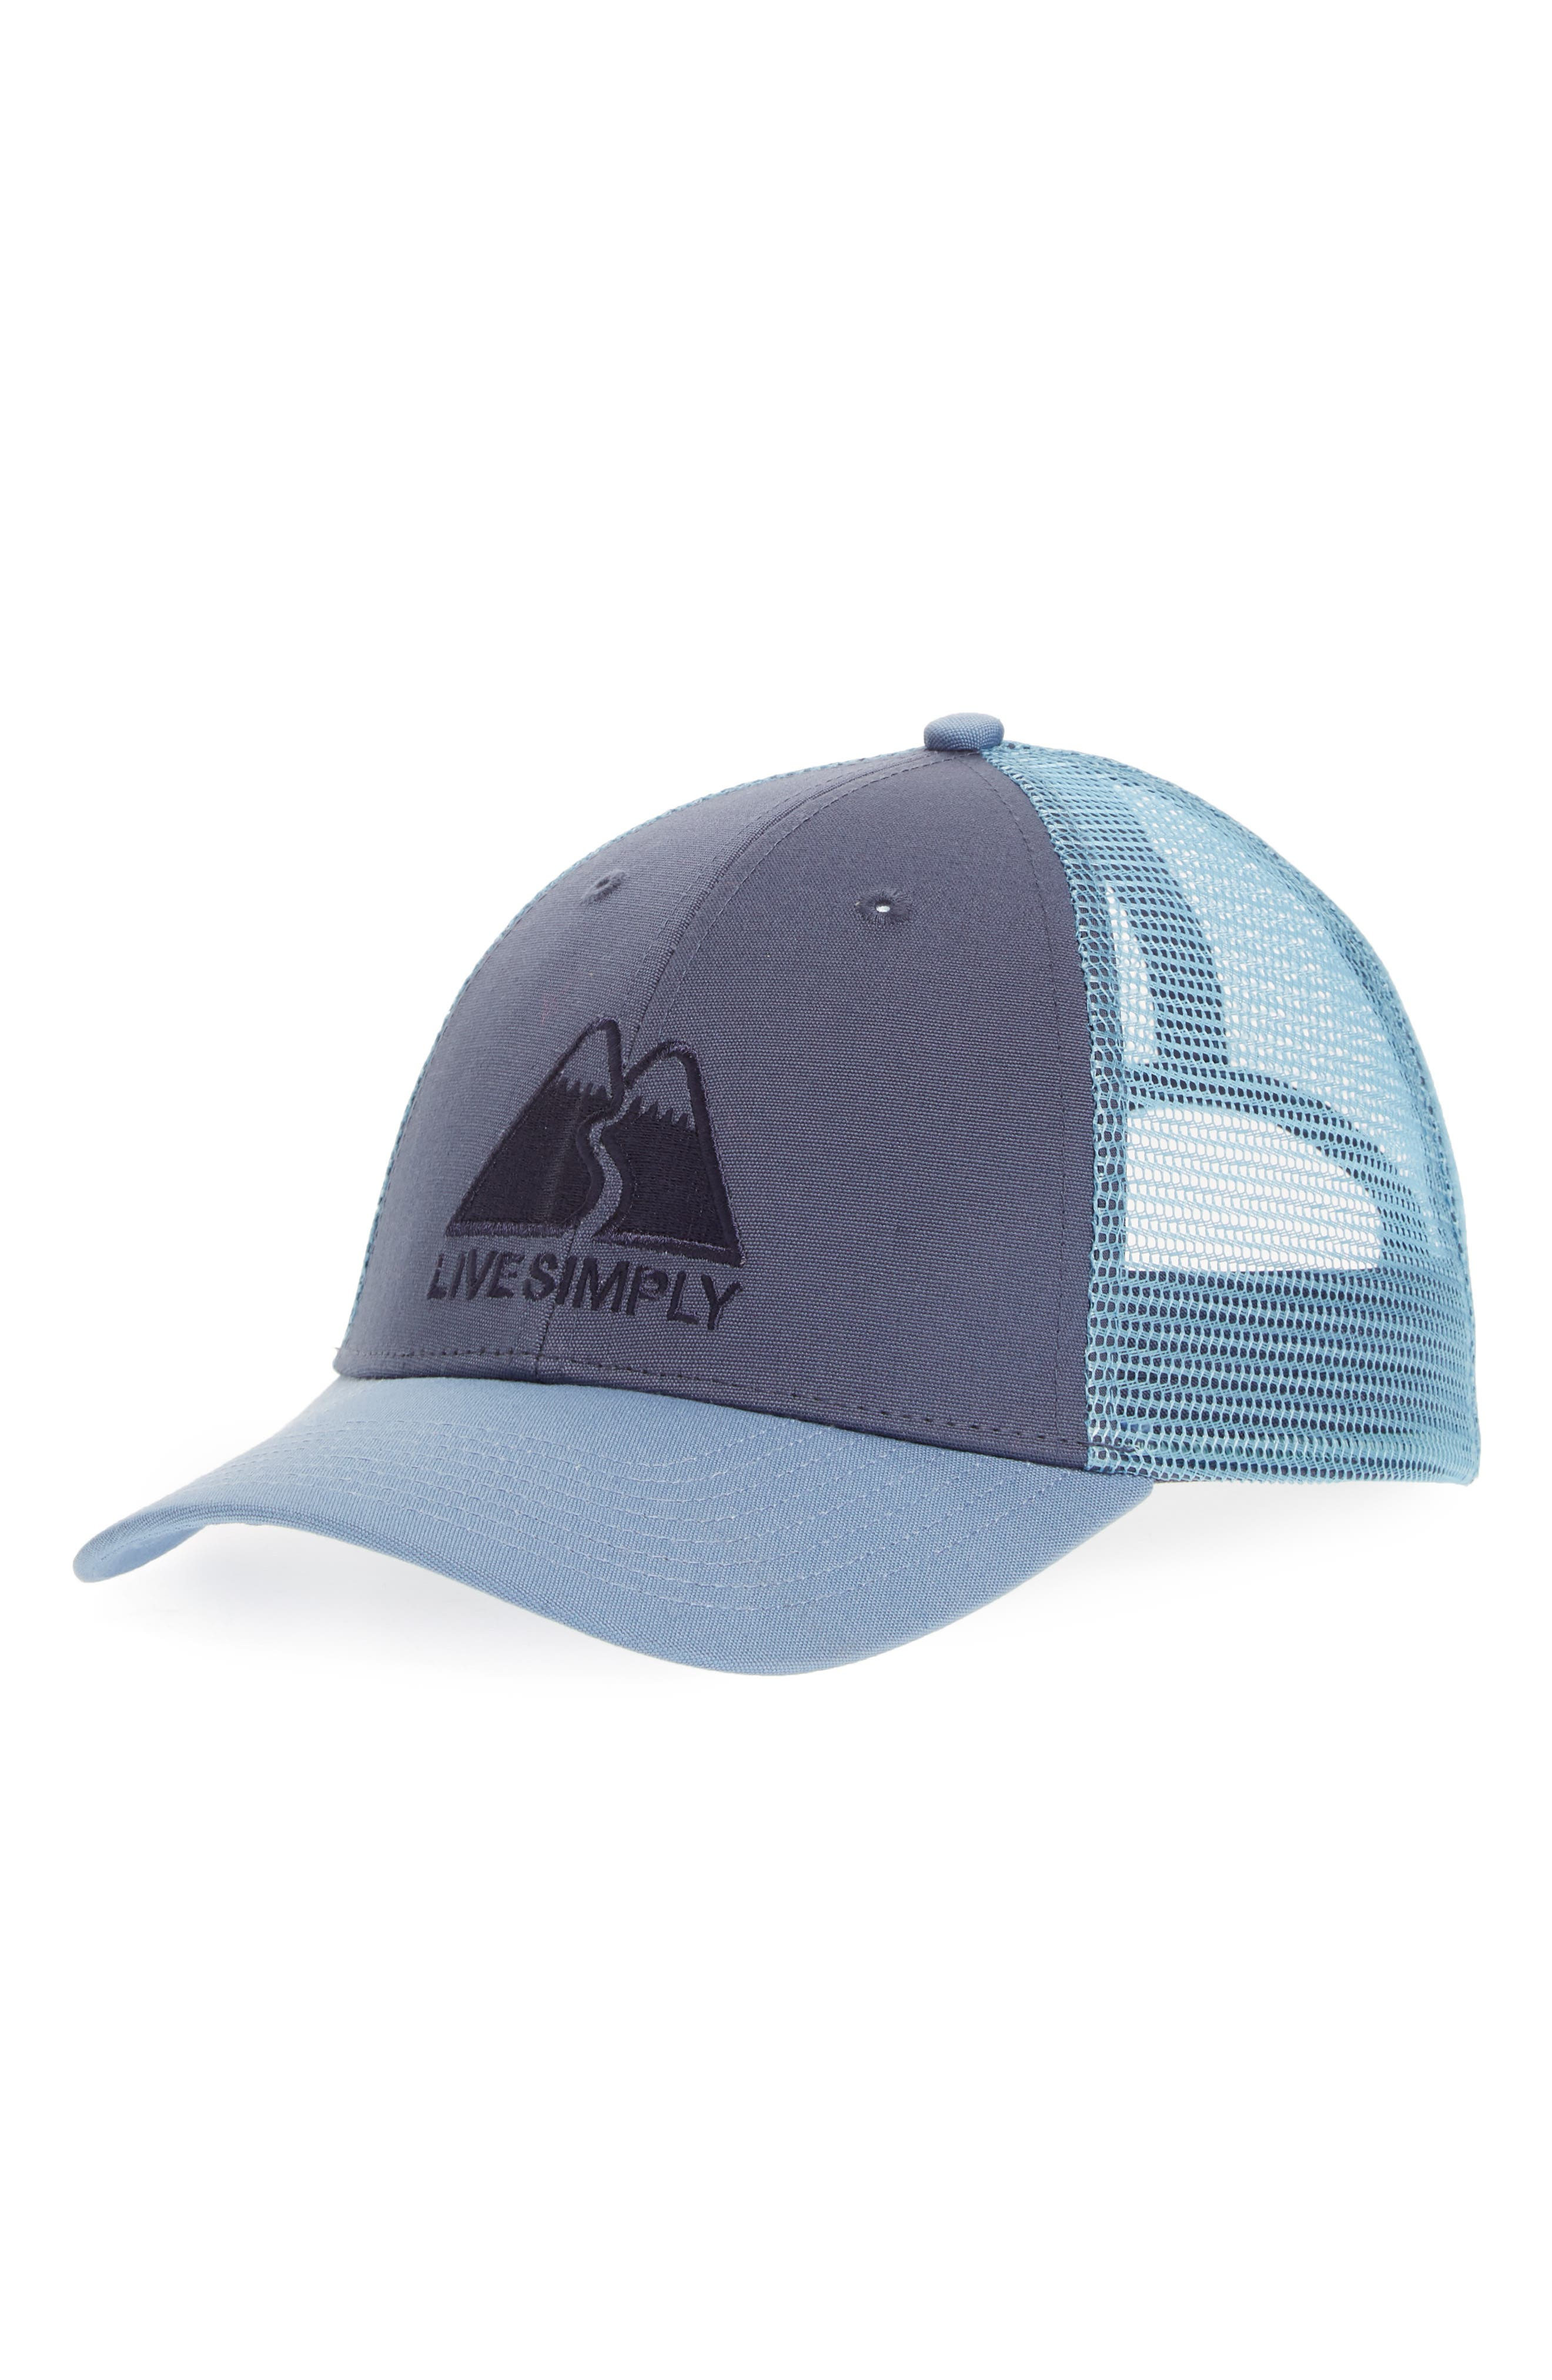 Live Simply Trucker Hat,                         Main,                         color, 400